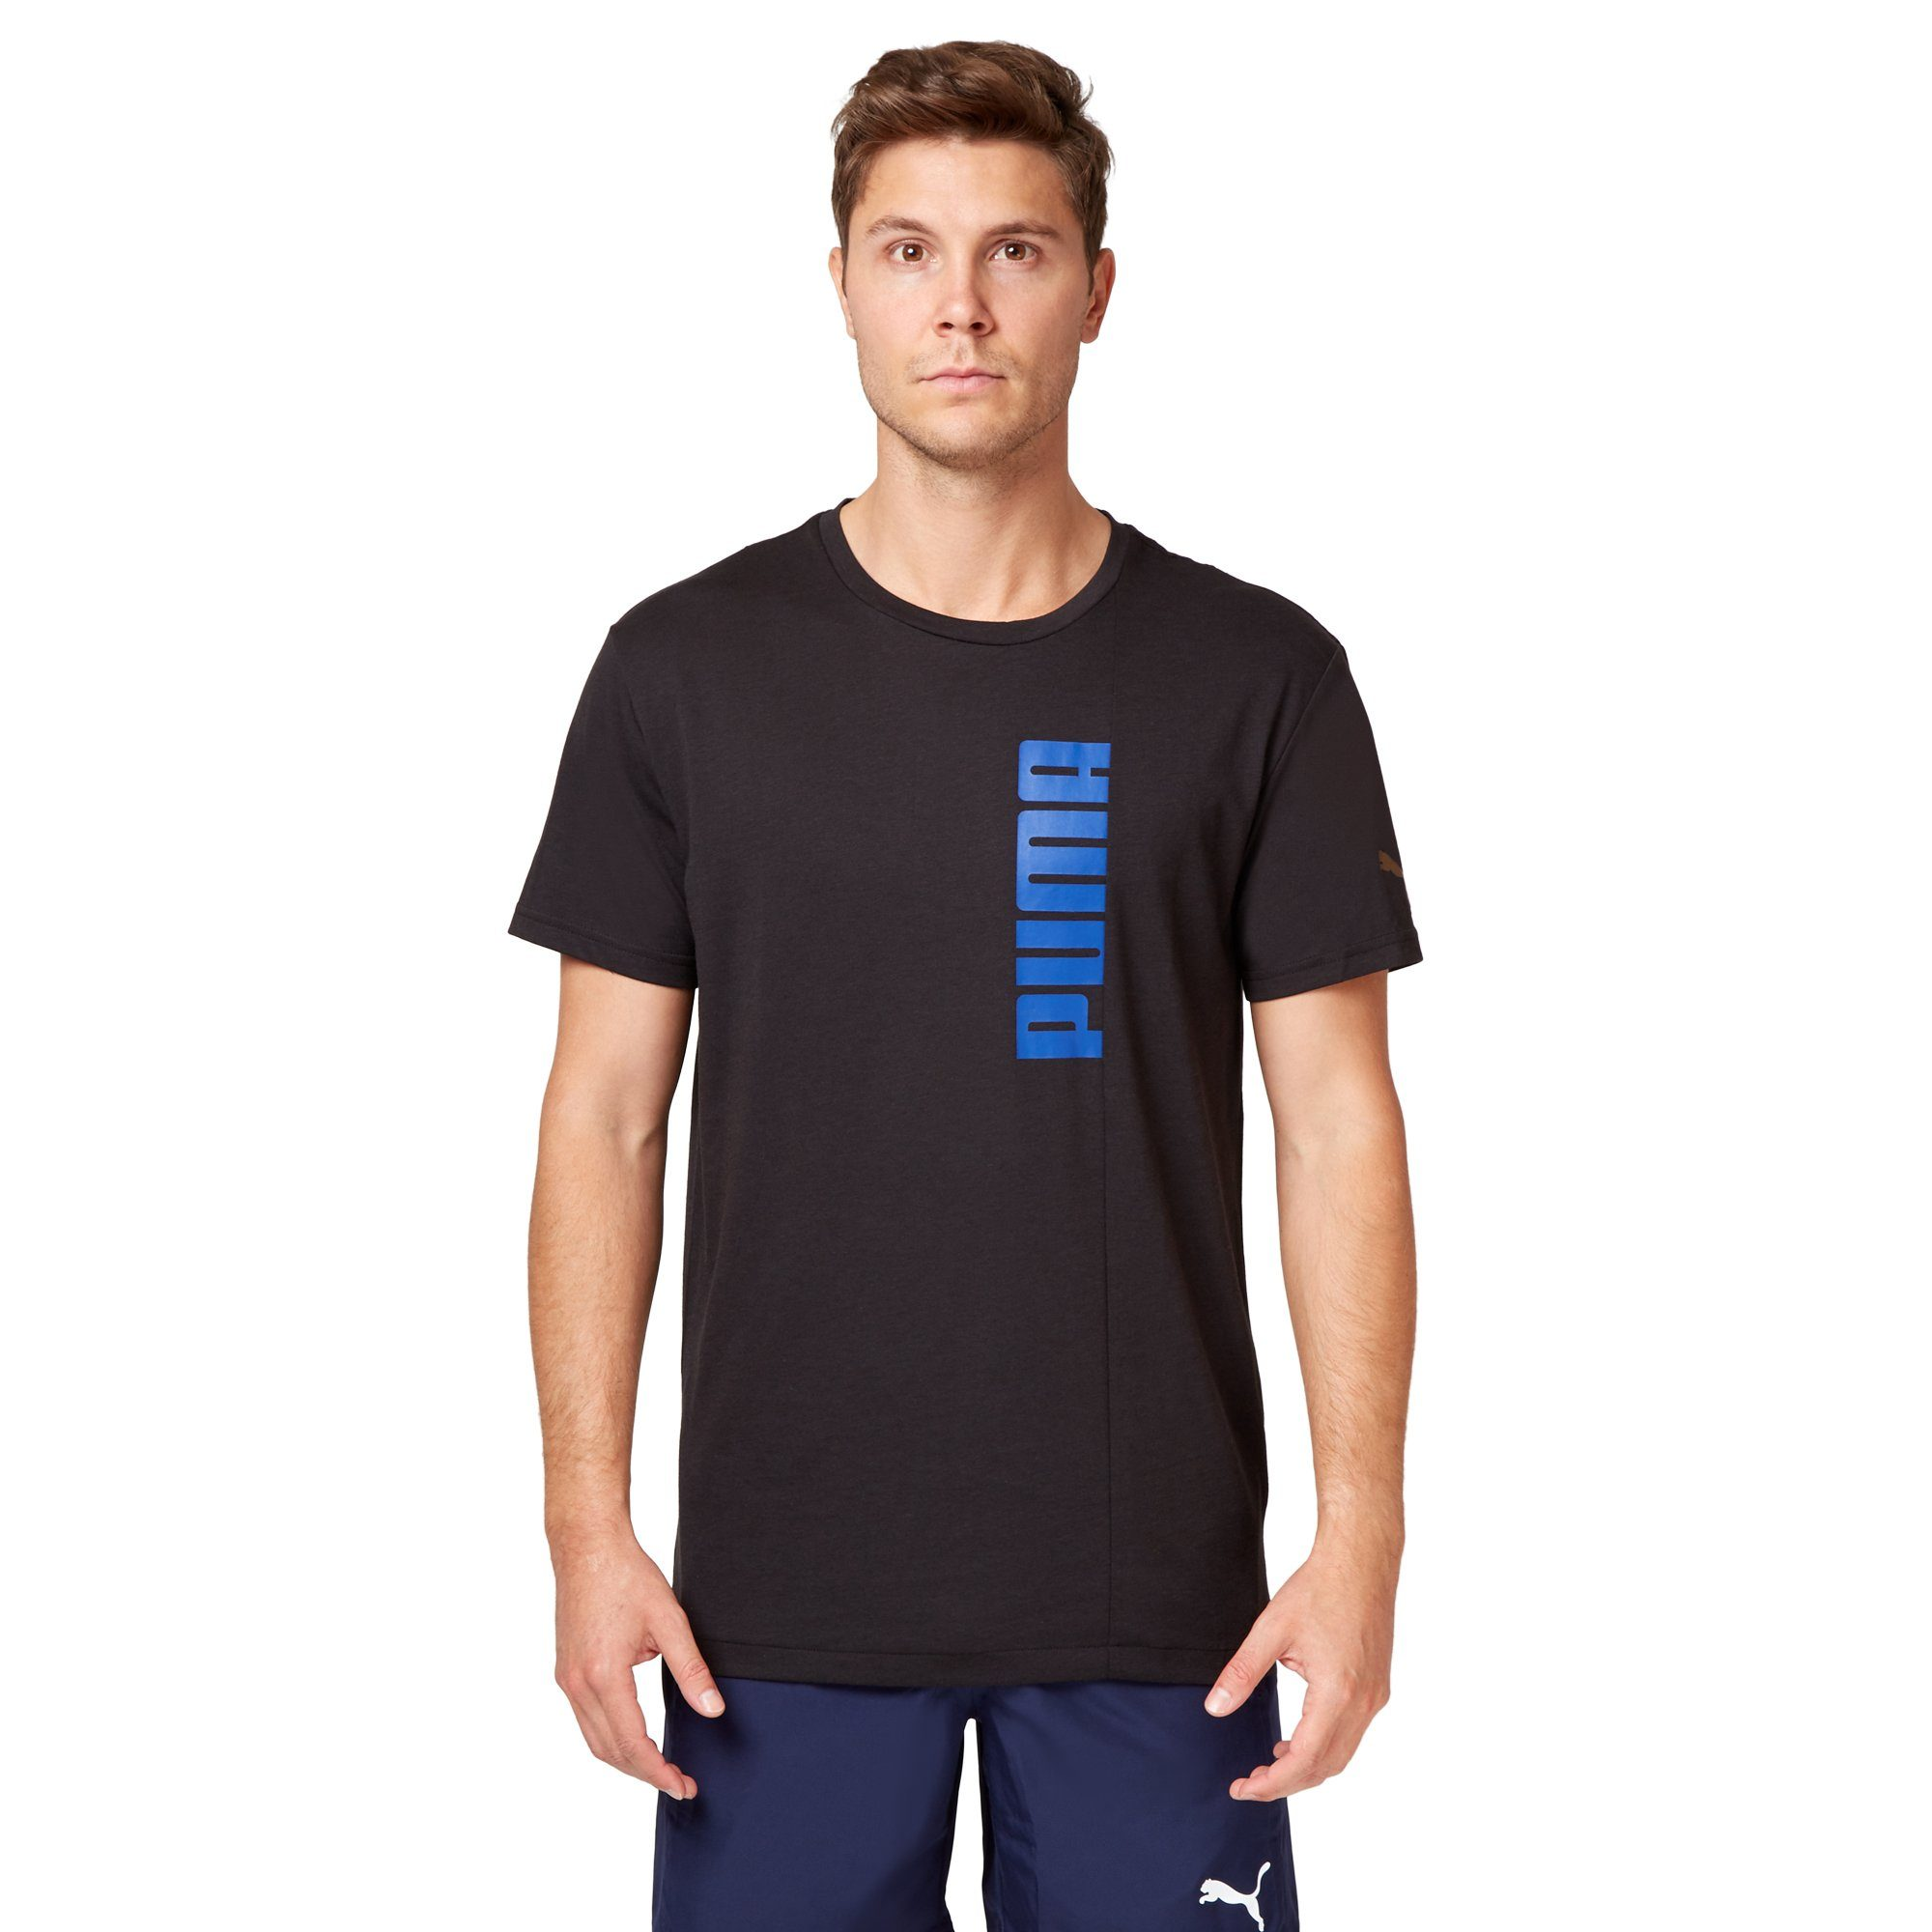 Puma Men's Energy Triblend Graphic Tee - Black Apparel Puma